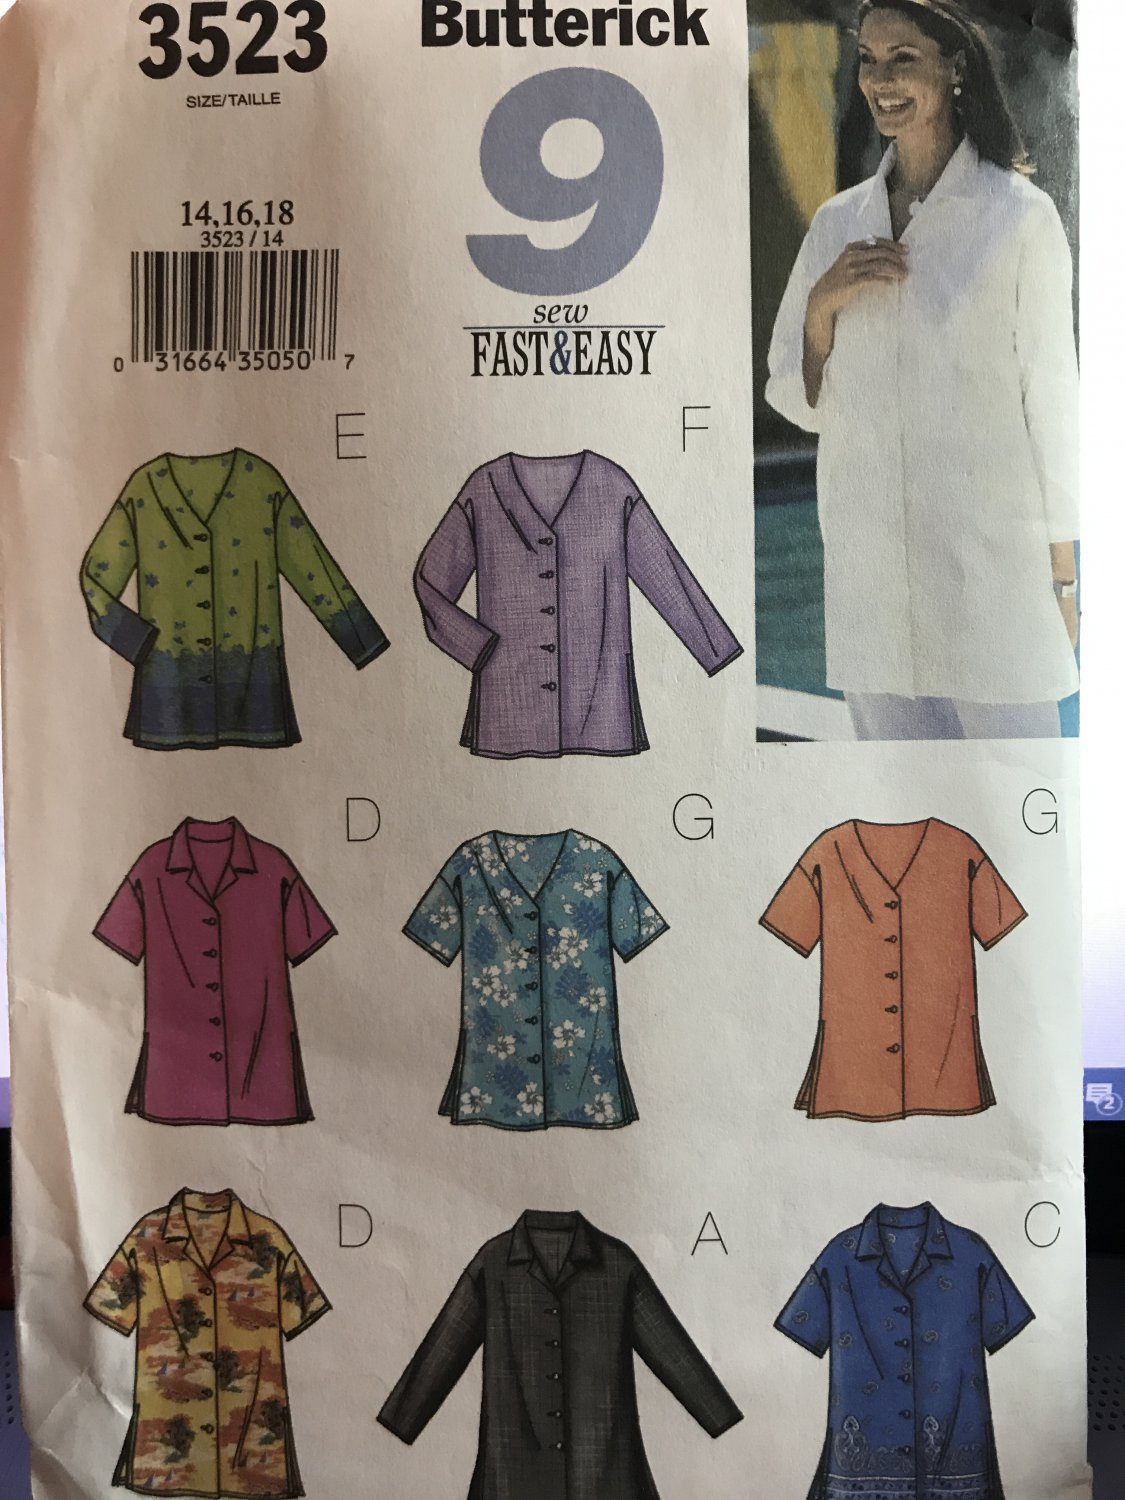 Butterick 3523 Misses Tops with Variations 9 Made Easy Sewing Pattern size 14 16 18